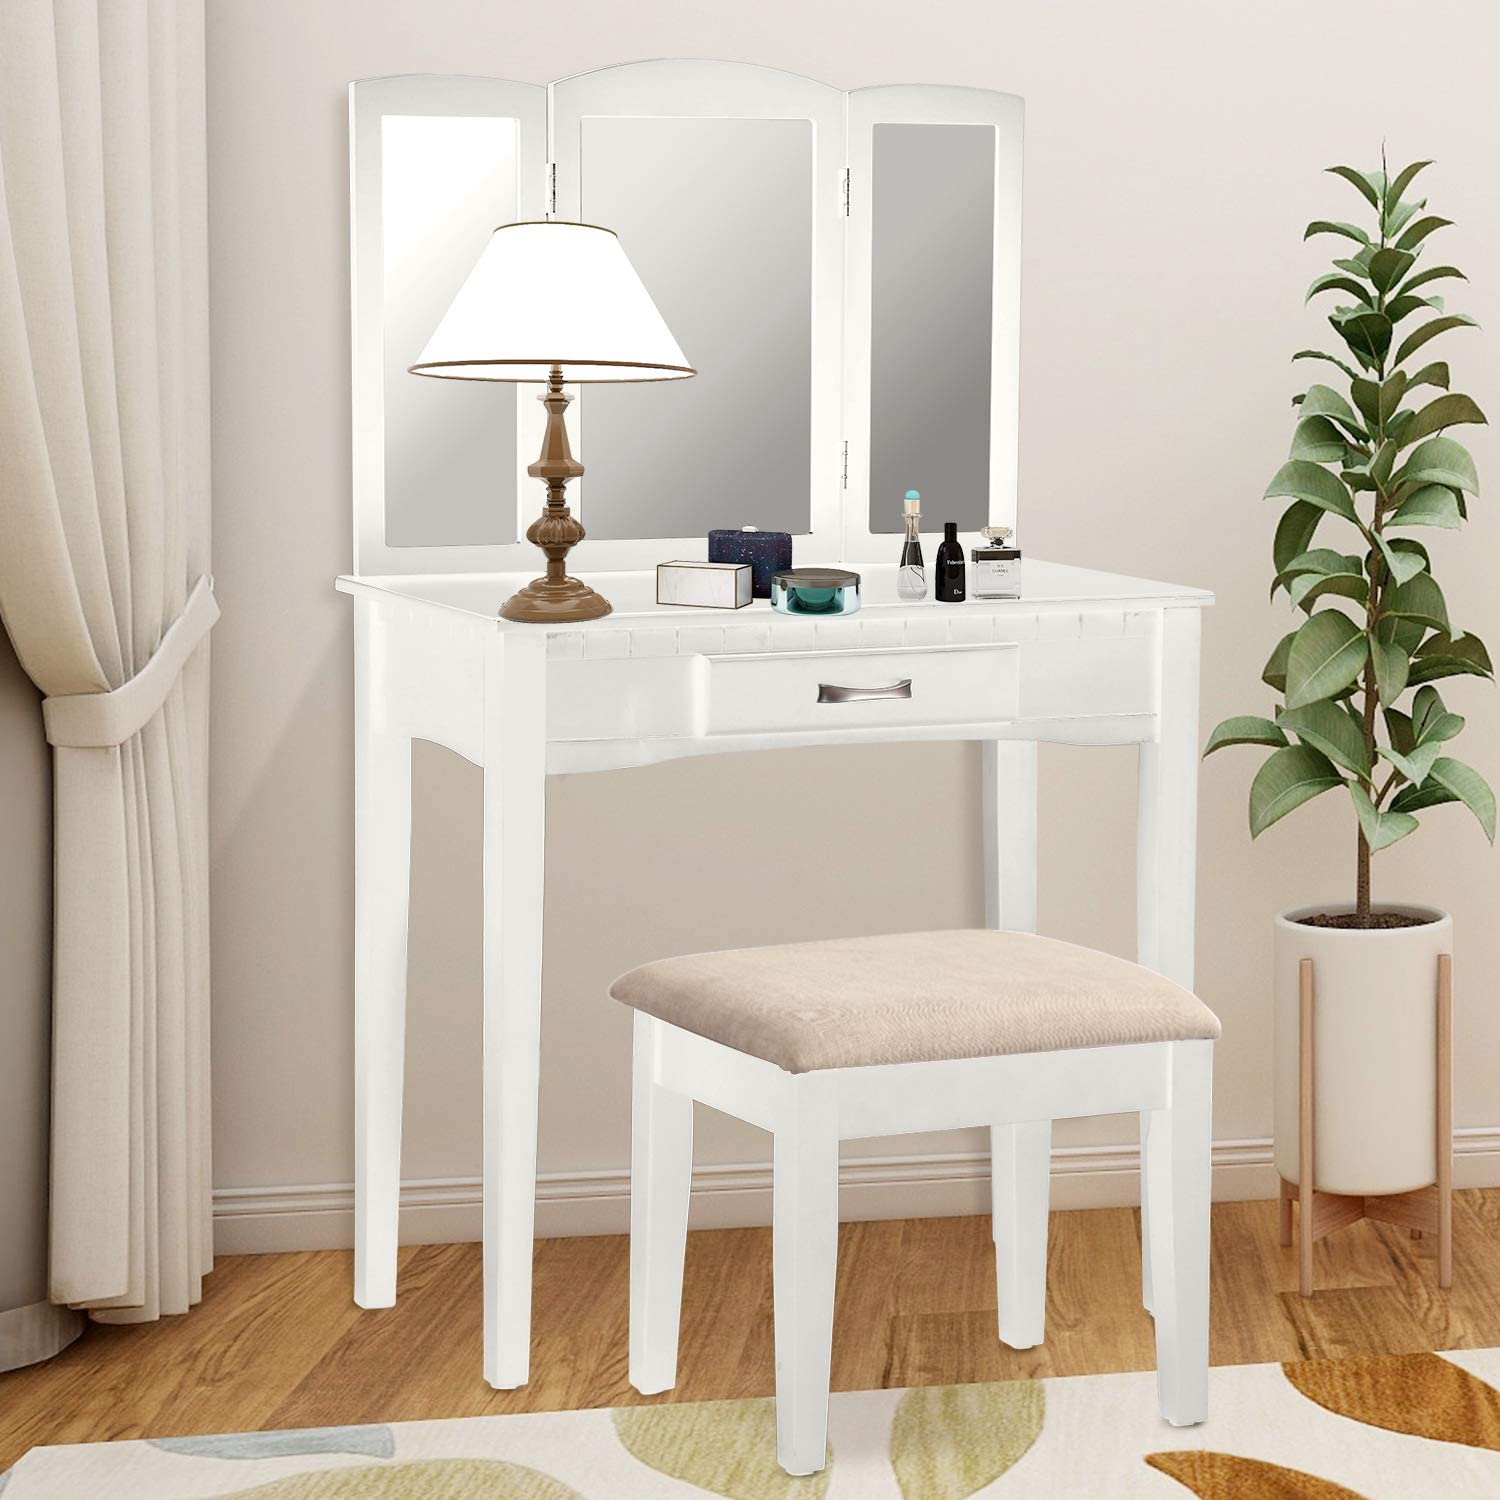 Harper Bright Designs Vanity Table Set with Tri-Fold Mirror and Stool Make-up Dressing Table Snow White